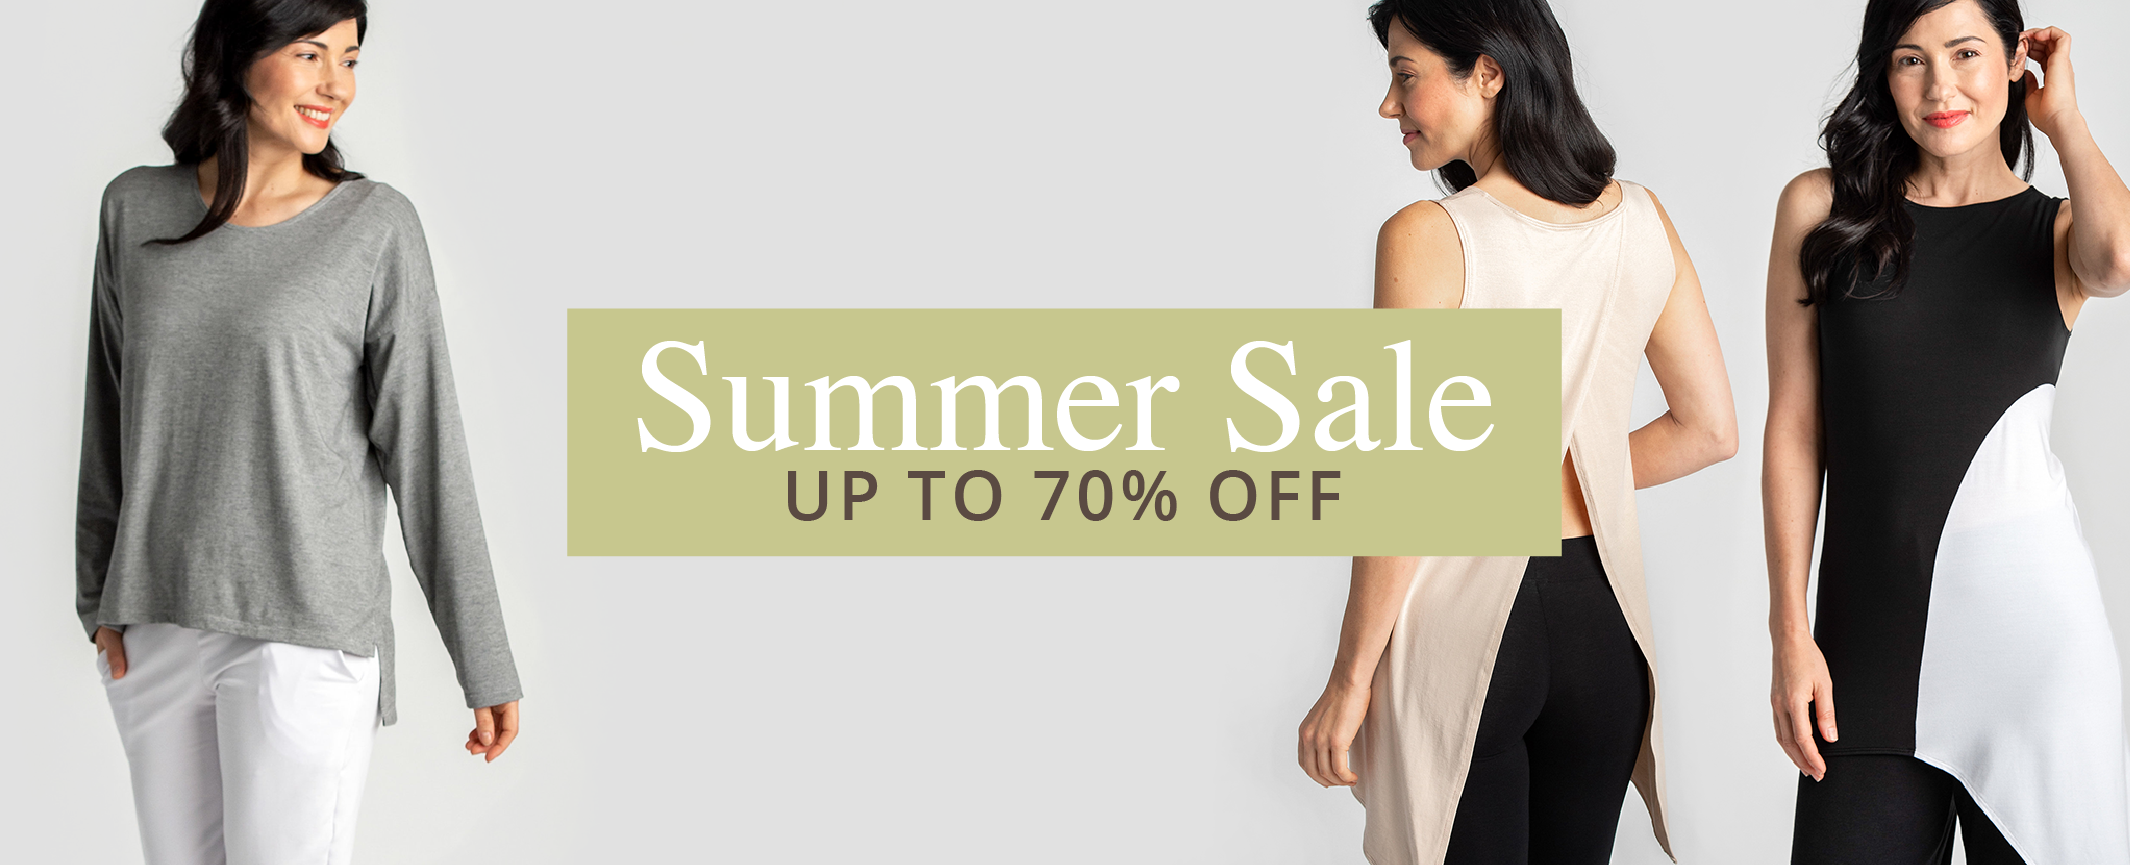 Duffield-Design-Summer-Sale